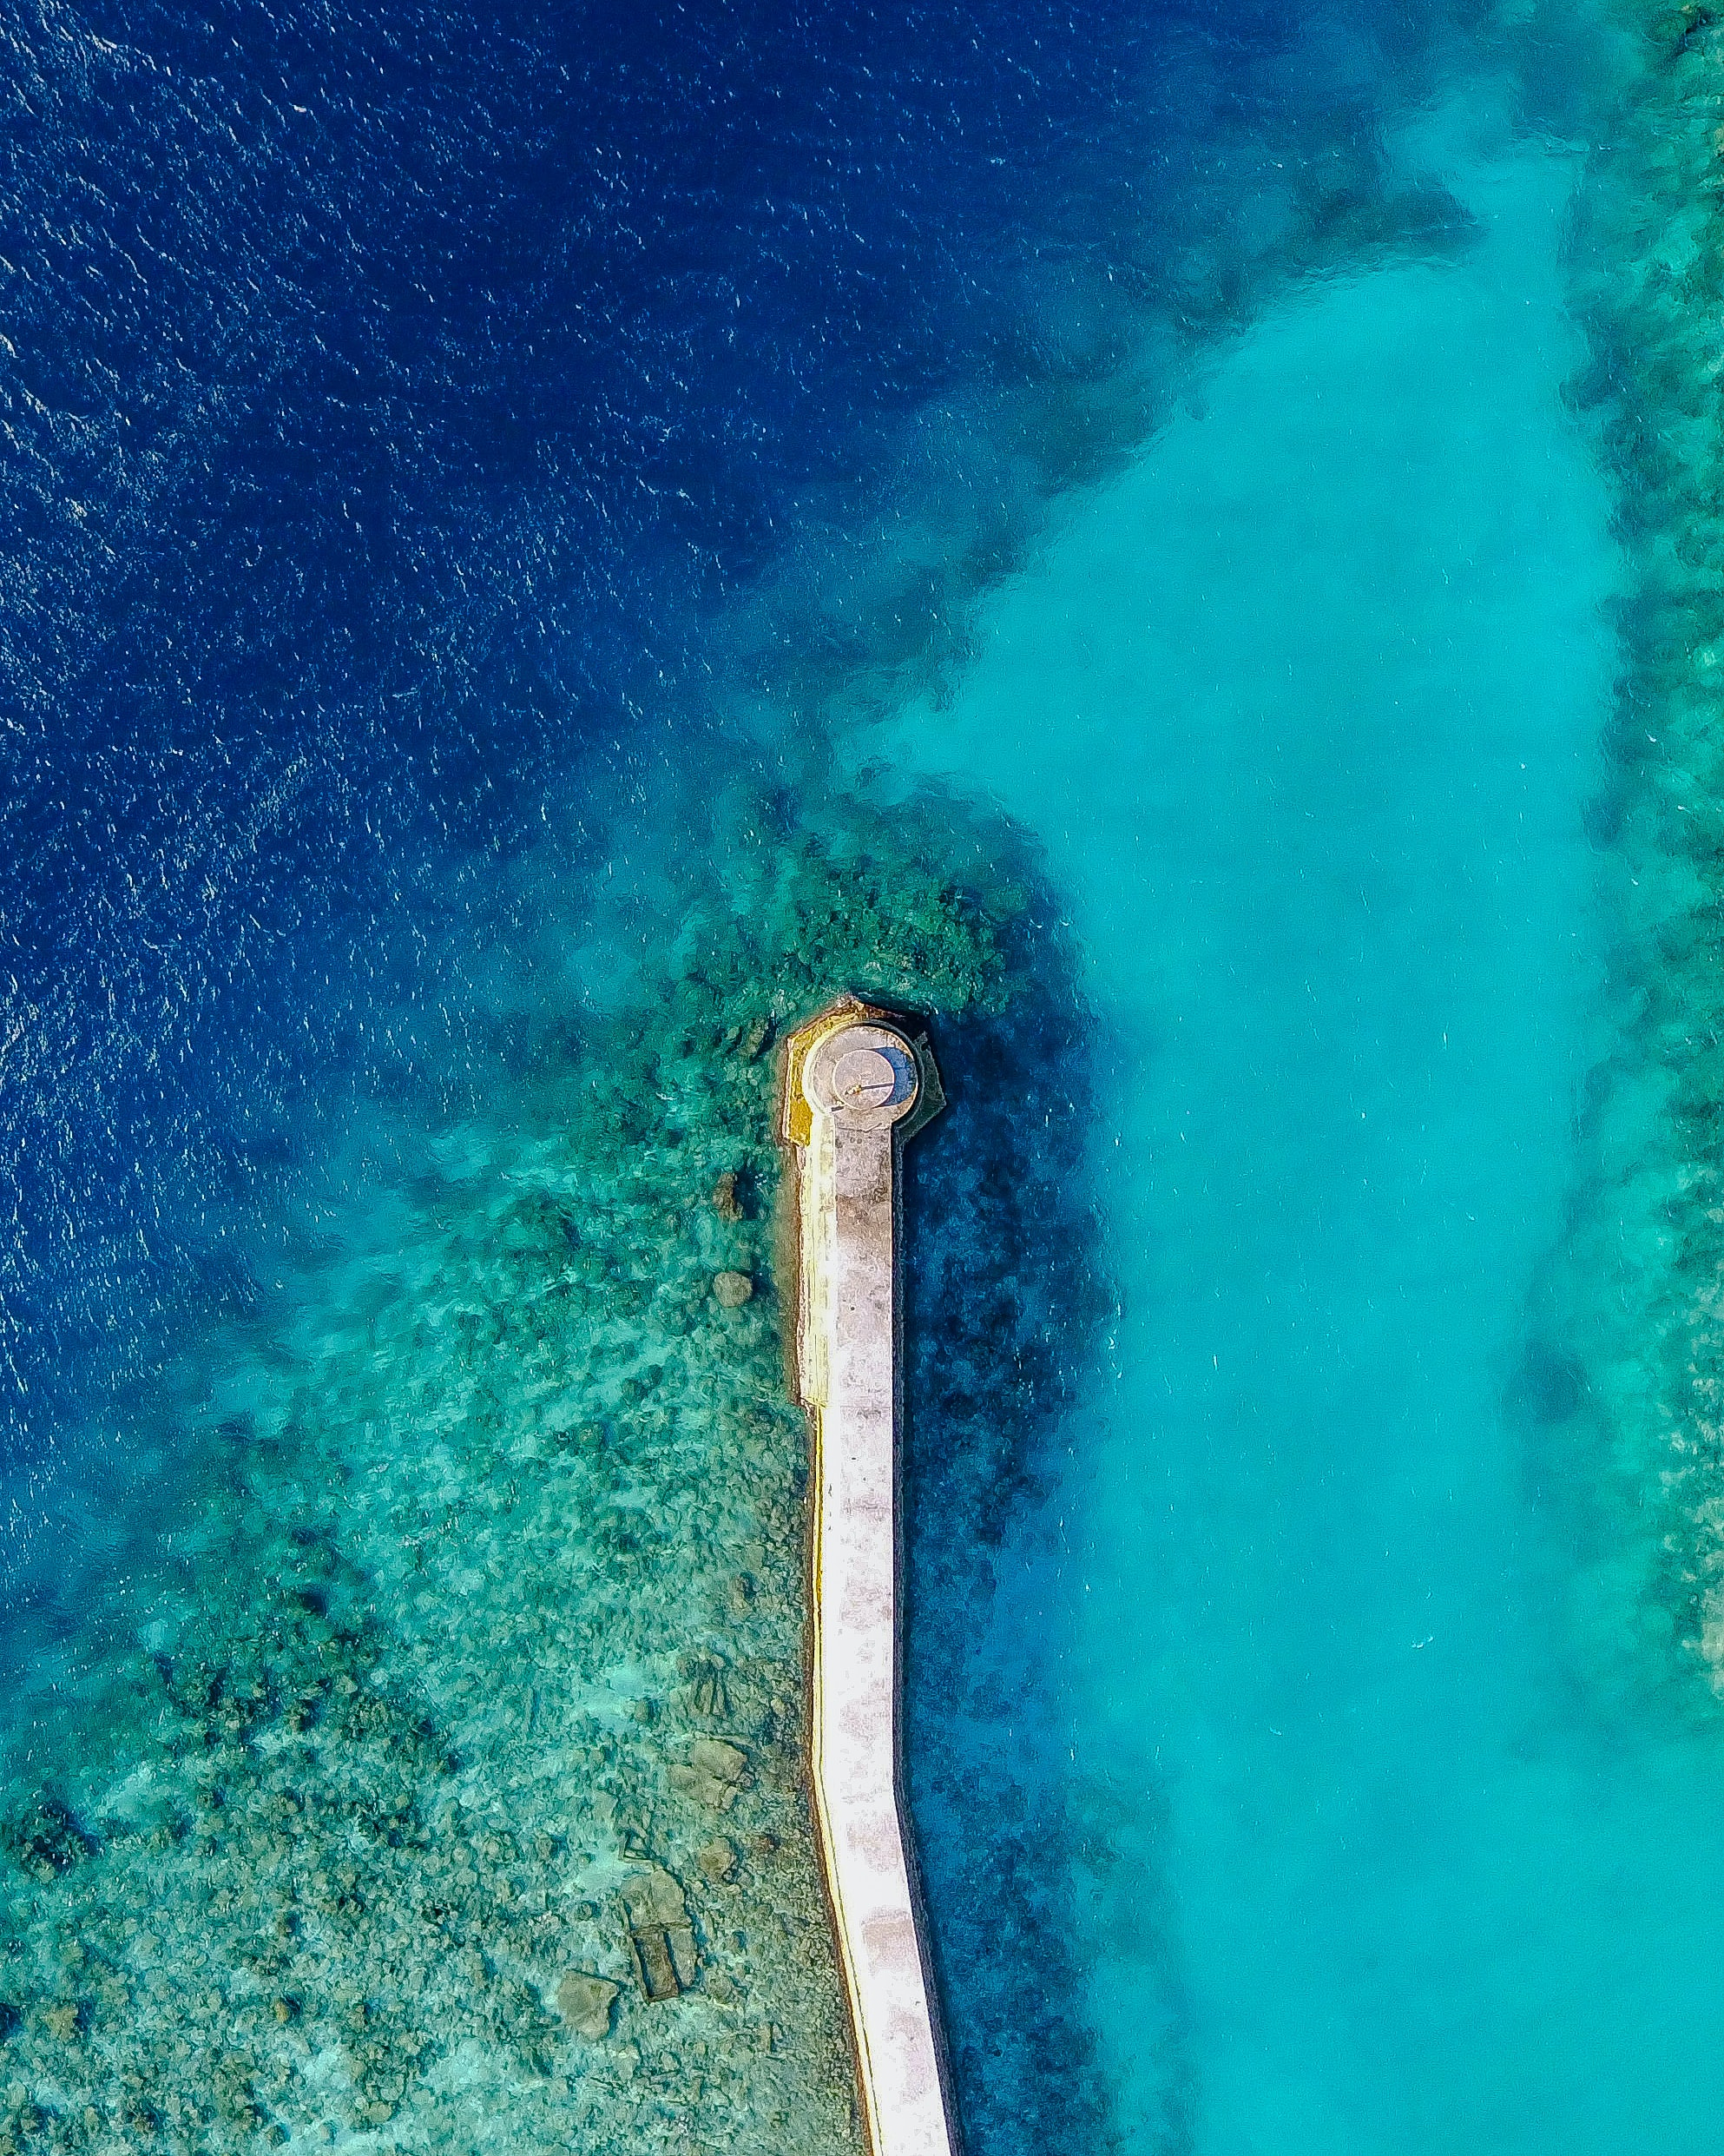 A drone shot of a long jetty on a blue coral reef